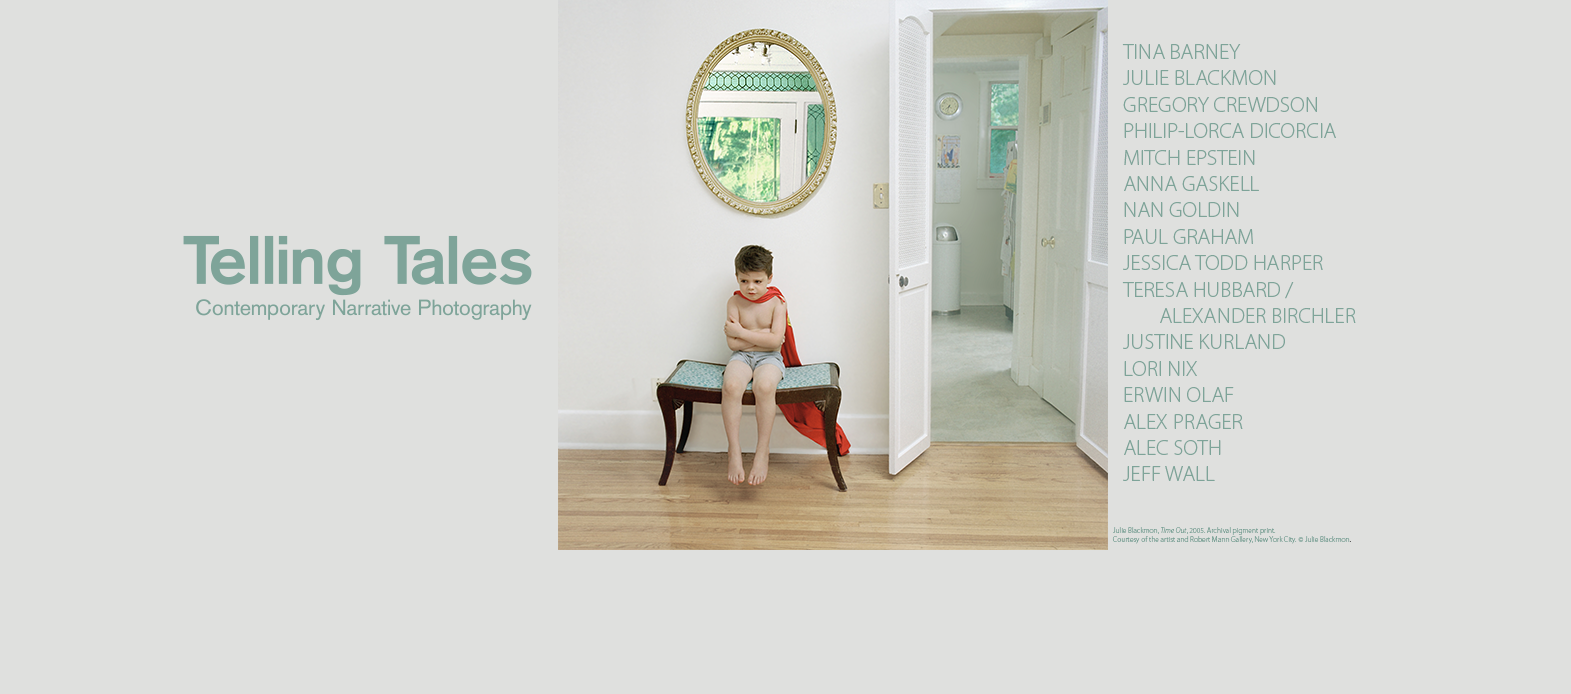 Telling Tales: Contemporary Narrative Photography